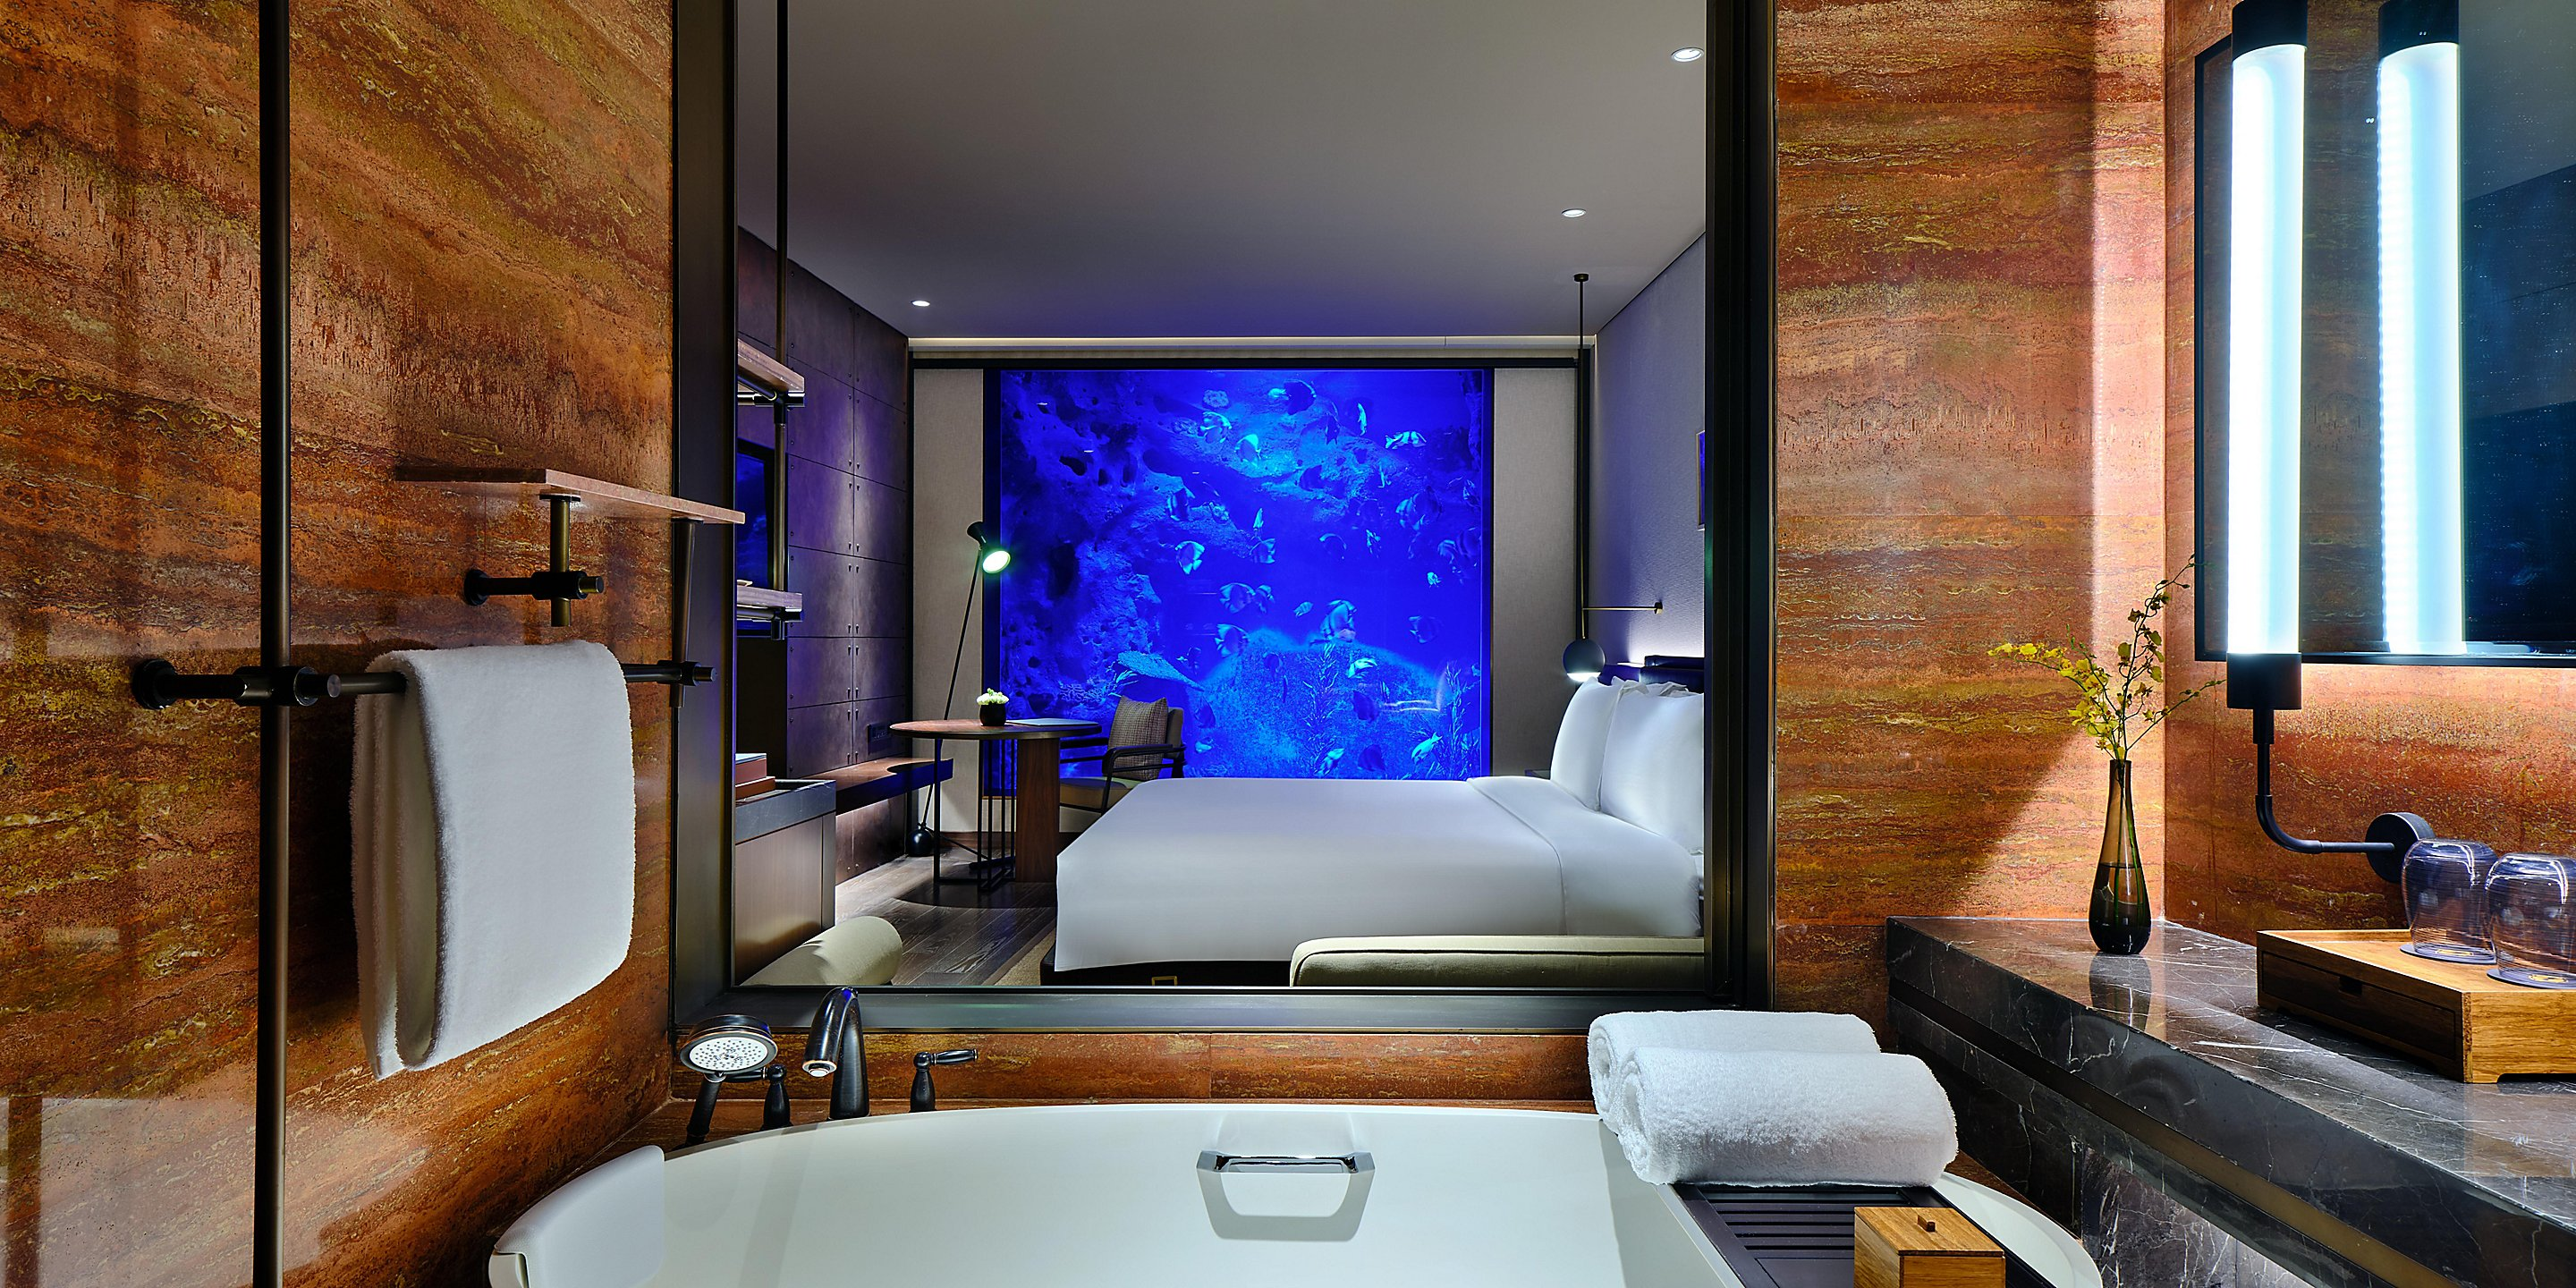 InterContinental Shanghai Wonderland Underwater Hotel Room